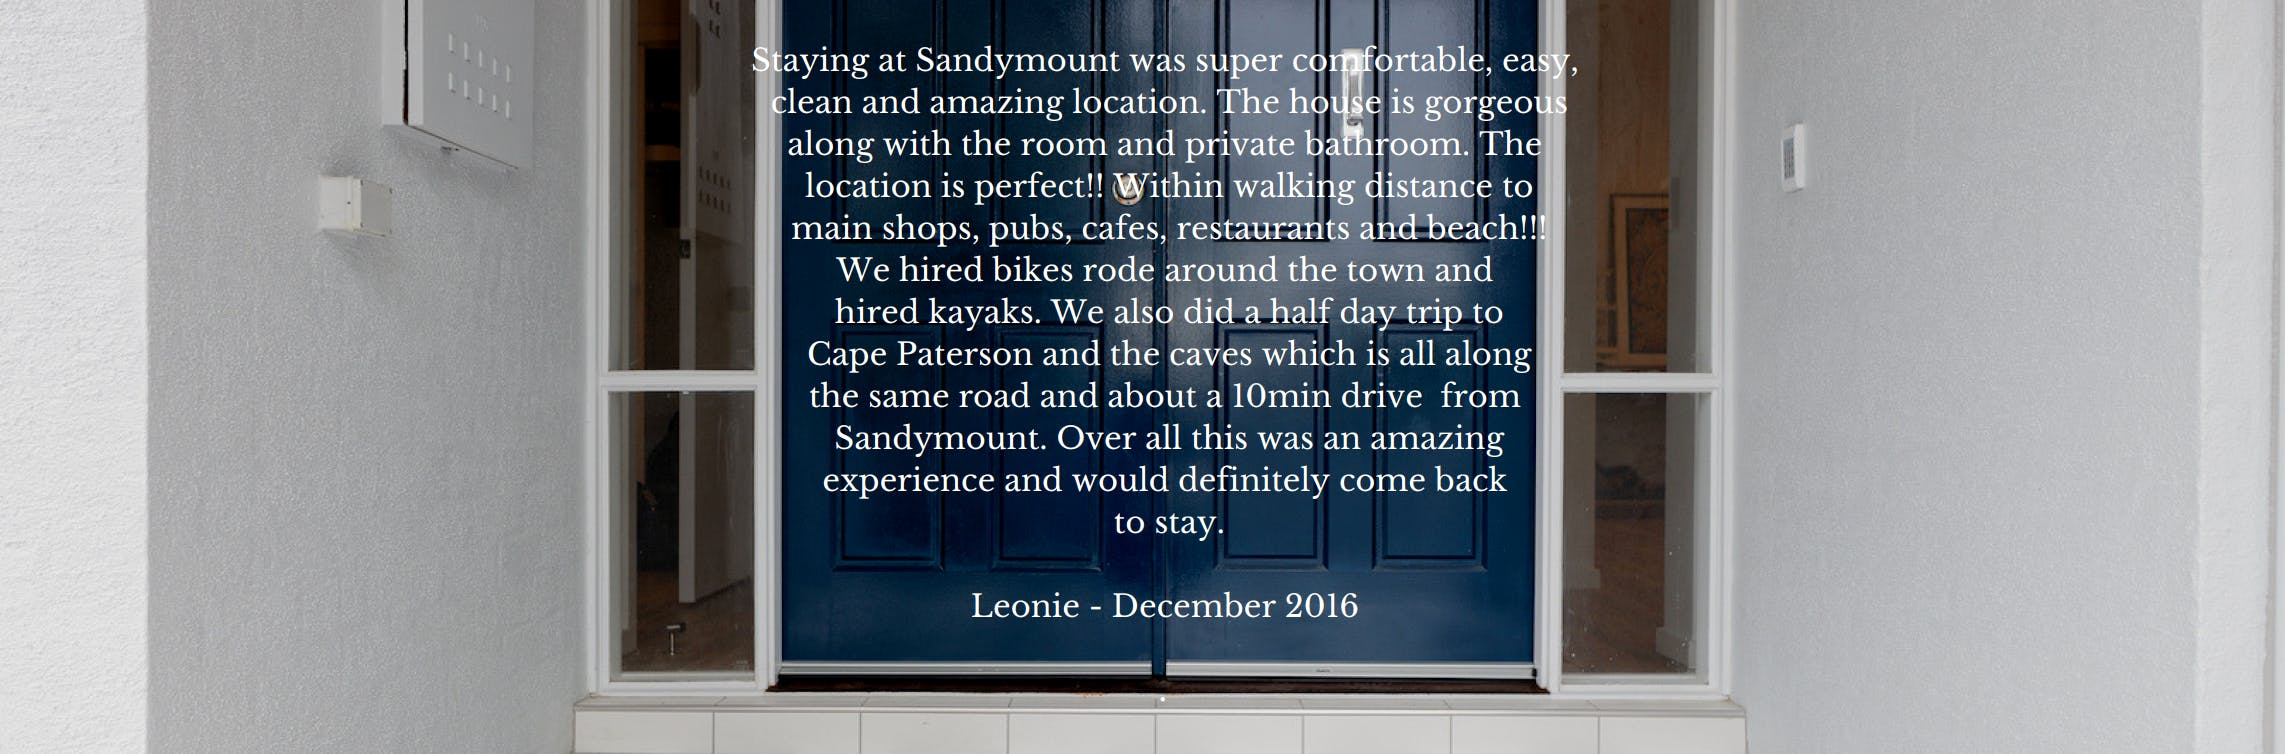 Sandymount Inverloch Guest Reviews